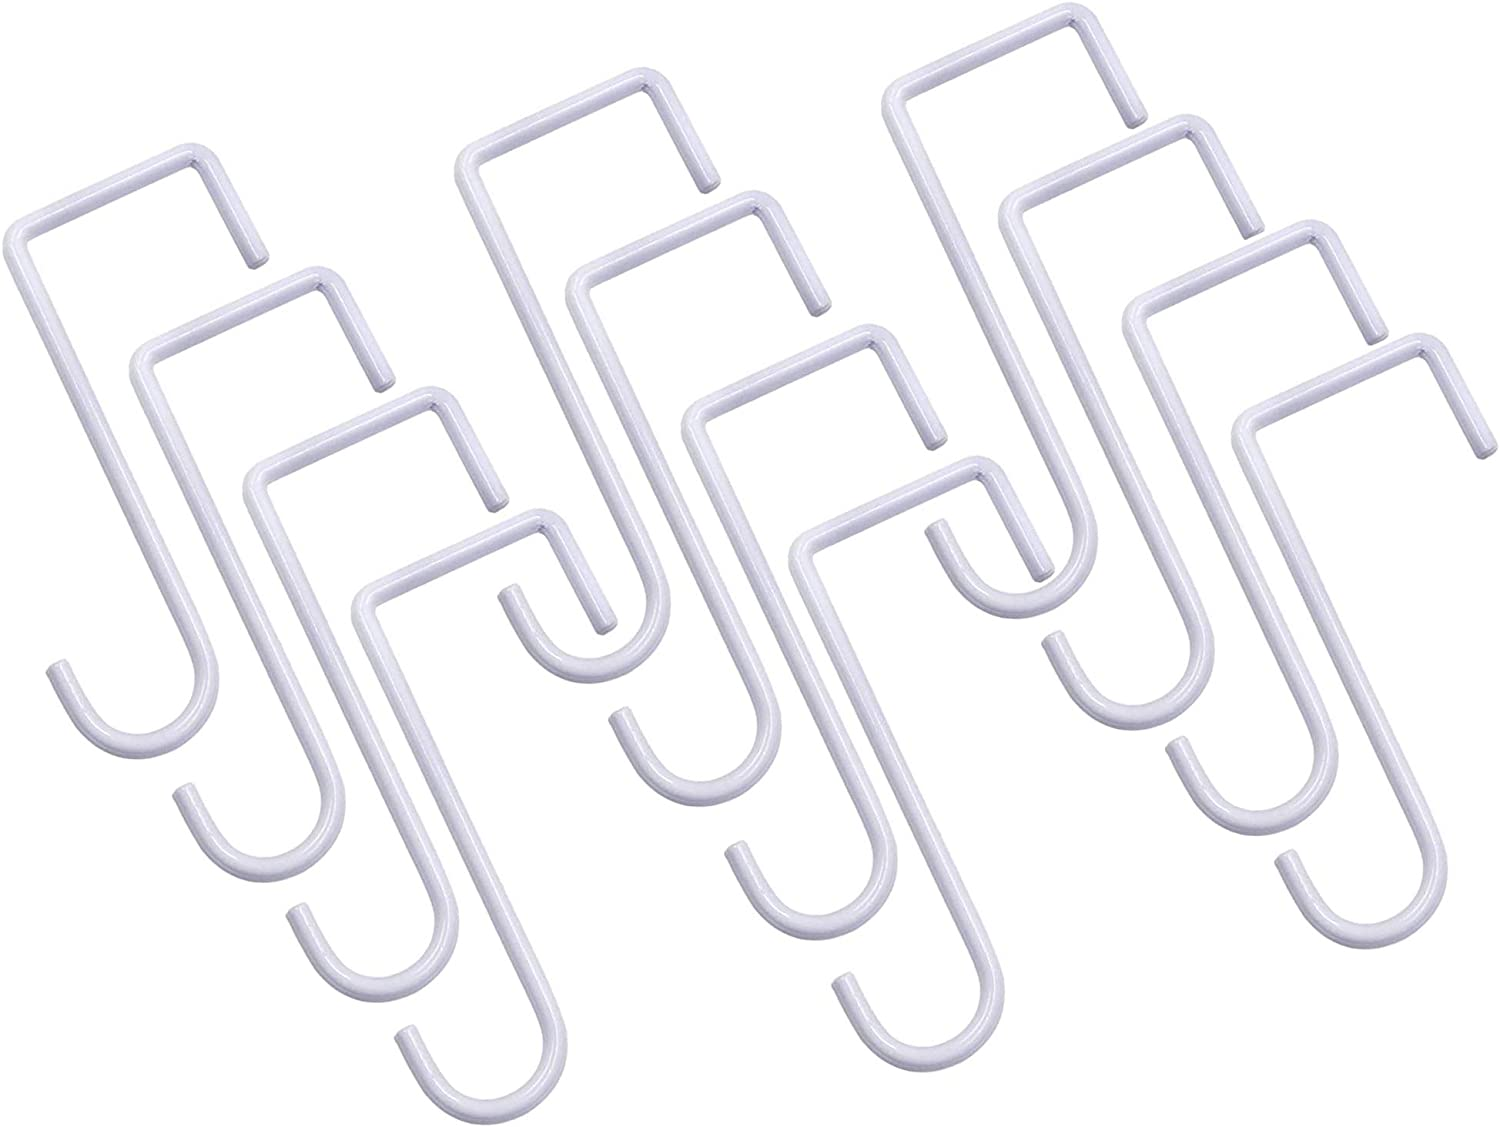 12 Pack Vinly Fence Hooks,2 x 6 inch Fence Hangers Patio Light Hooks, Patio White Powder Coated Steel Fence Hooks for Hanging Plants, Planters, Bird Feeders, Lights